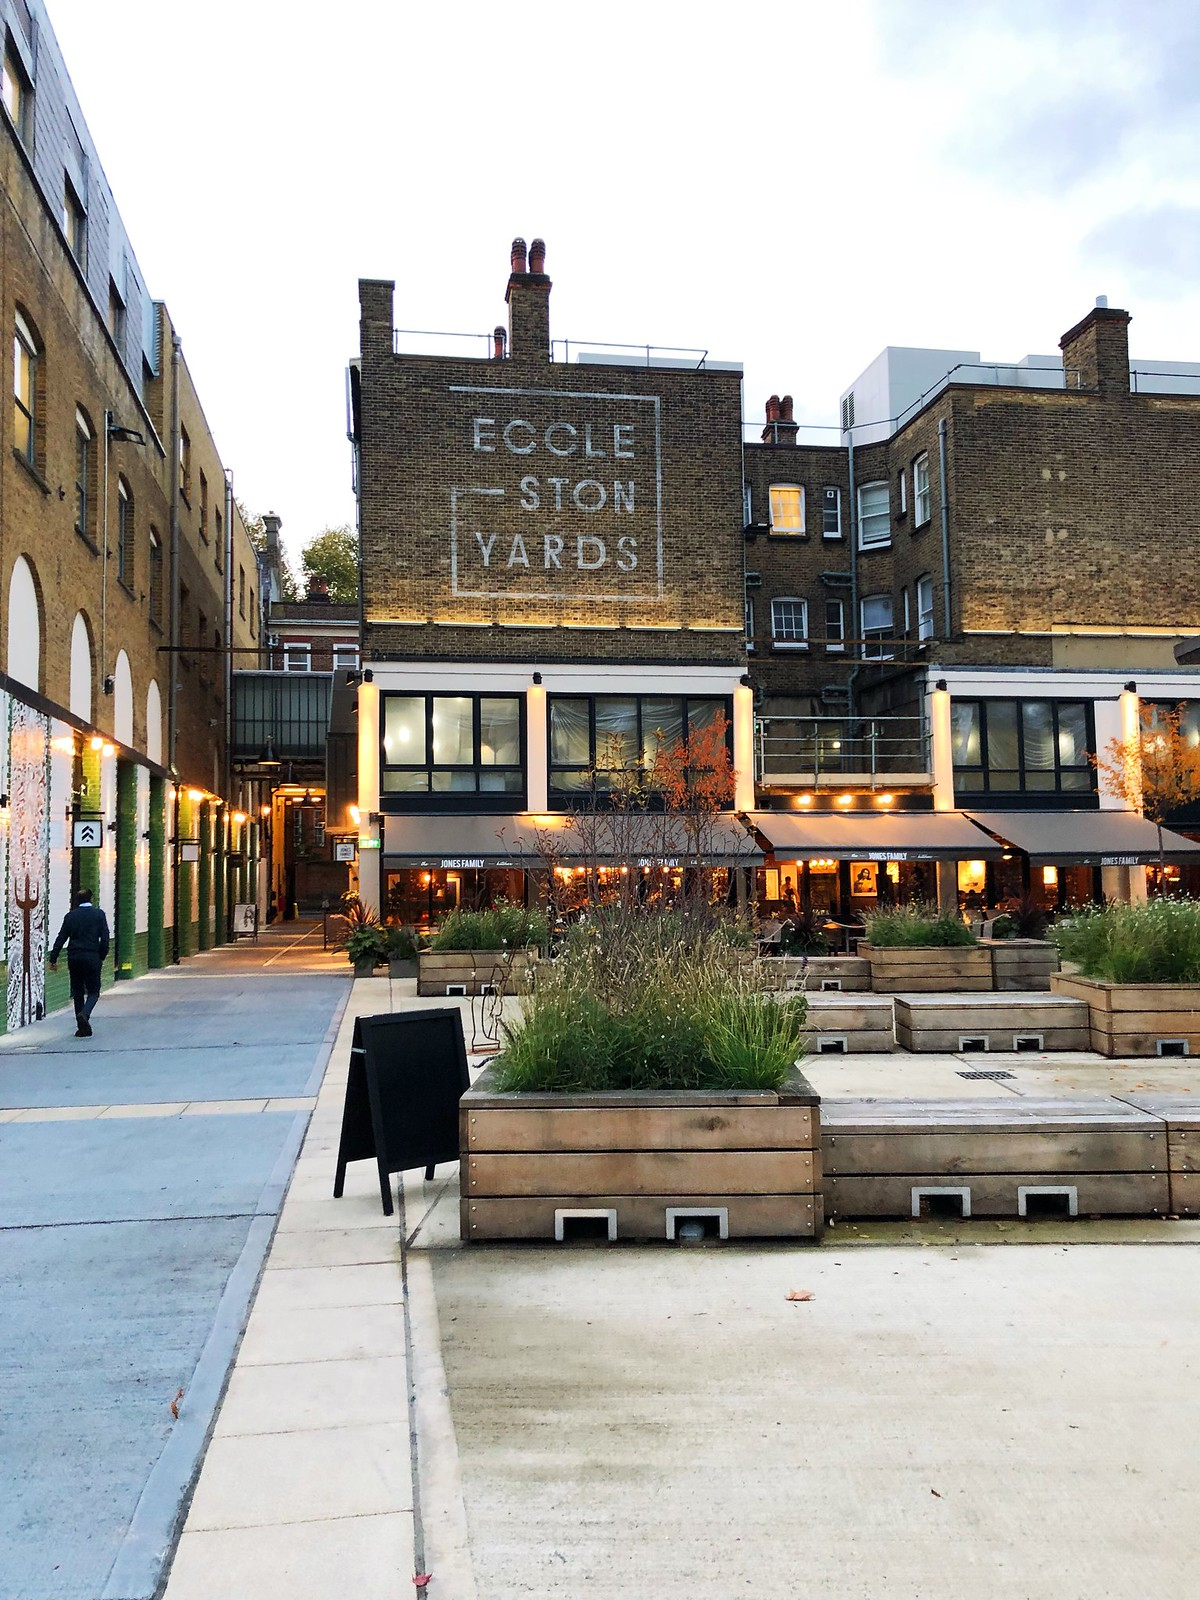 A Day Out in London for Adults: Belgravia (Eccleston Yards)   Not Dressed As Lamb, a blog for over 40 women